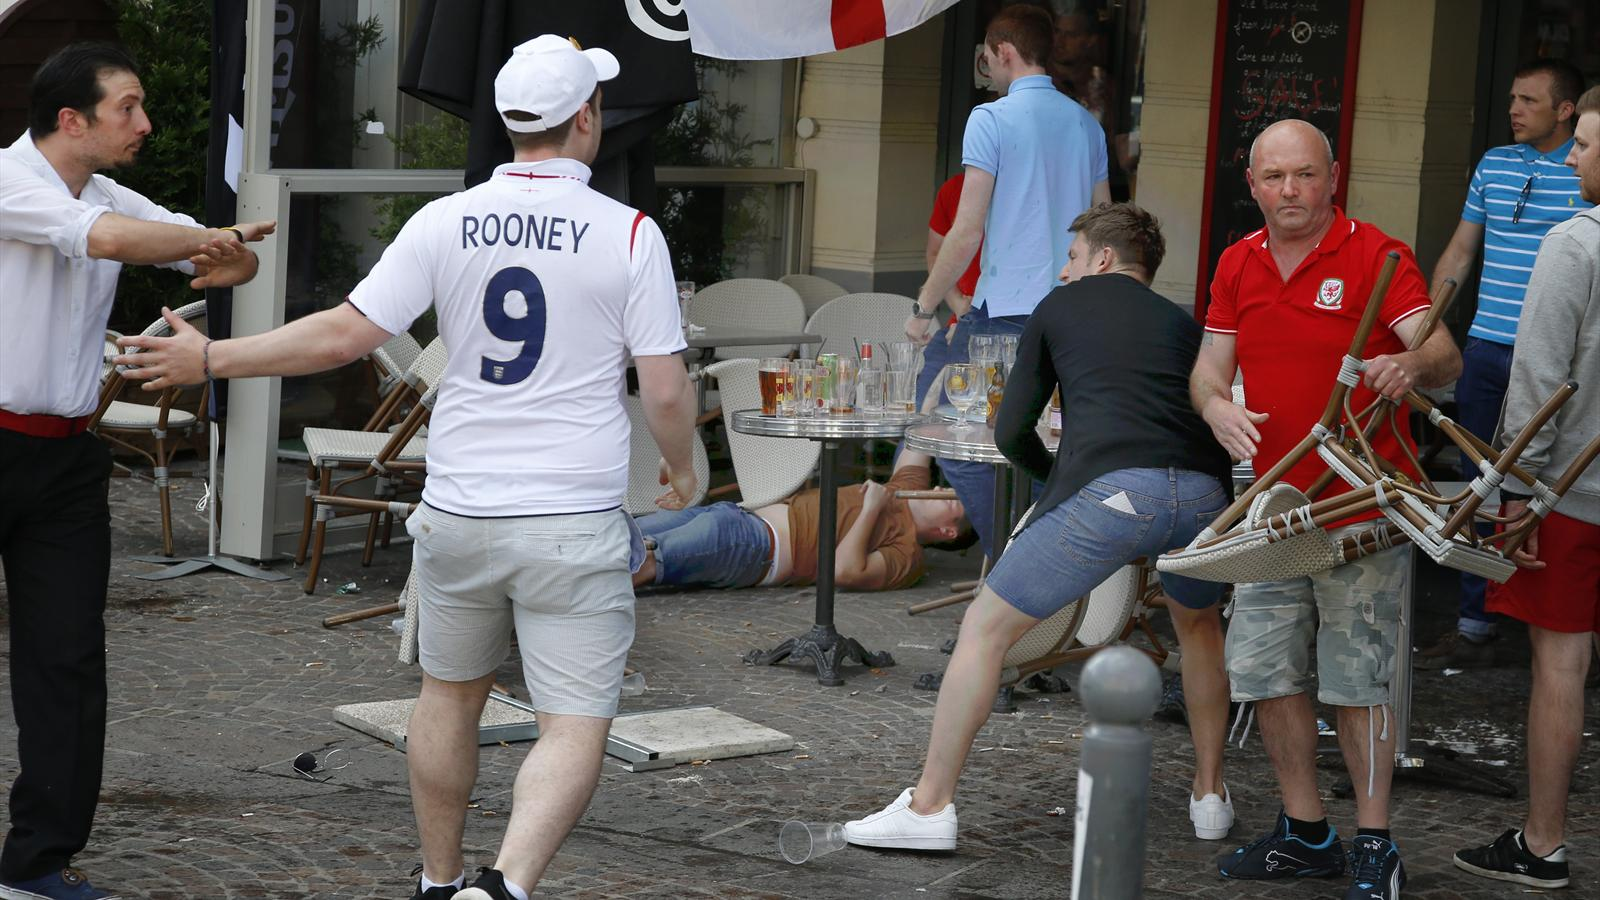 Euro 2016: Arrests in Lille as English and Welsh fans clash with Russians - Euro 2016 - Football ...